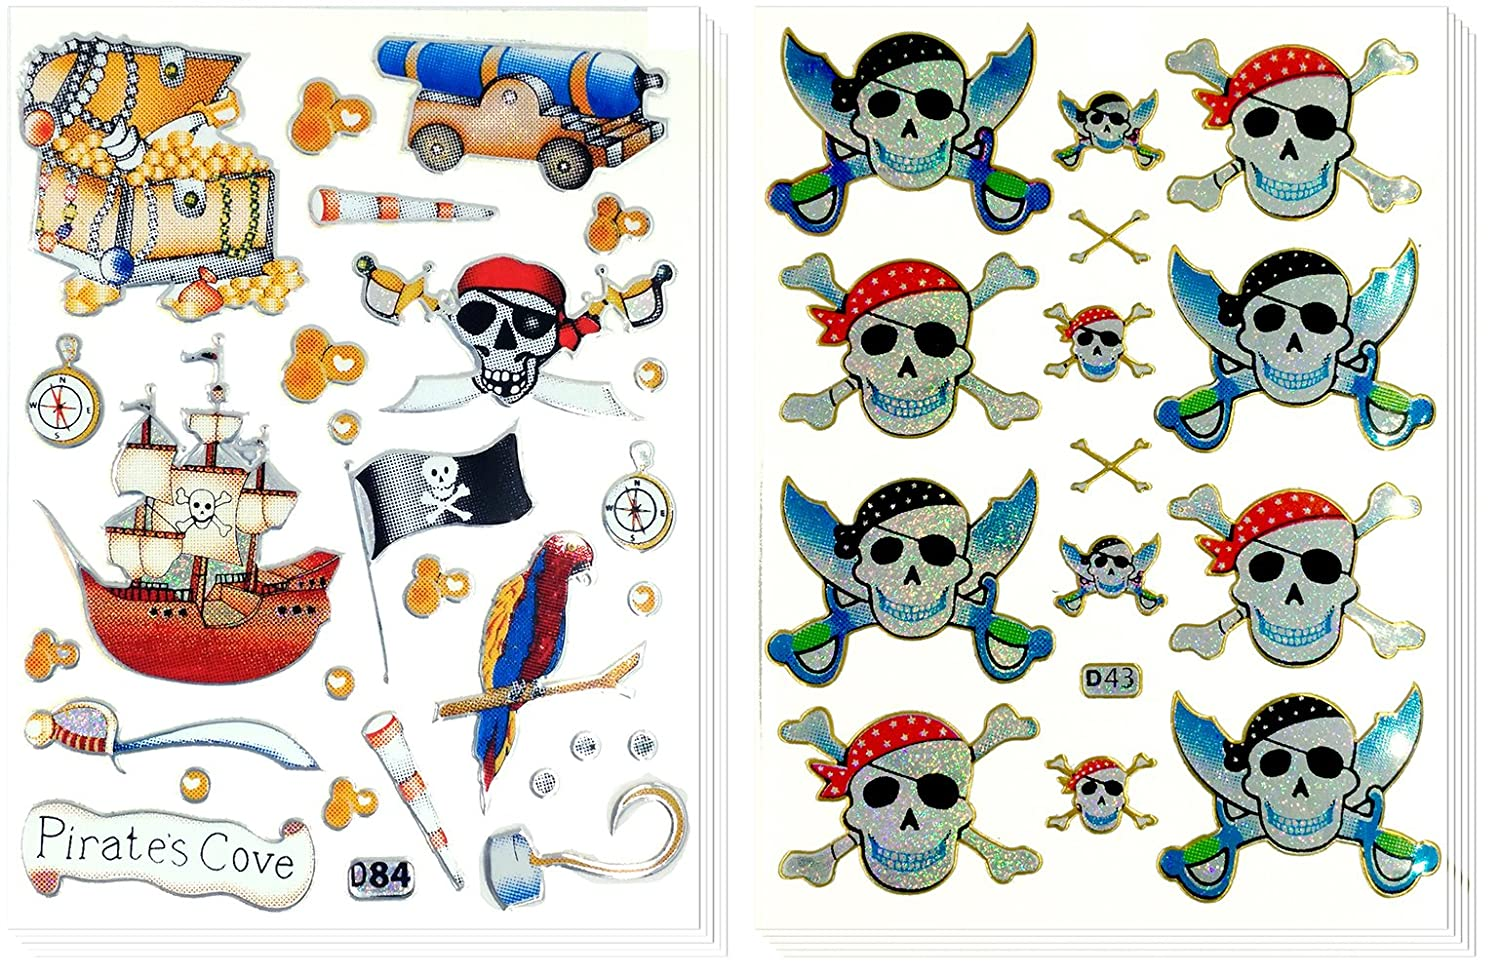 10 Sheets Decorative Sticker Scrapbook Stickers Stickers for Kids Reflective Stickers Pirate and Skull Head Size 4 X 5.25 Inch.//sheet Sticker108